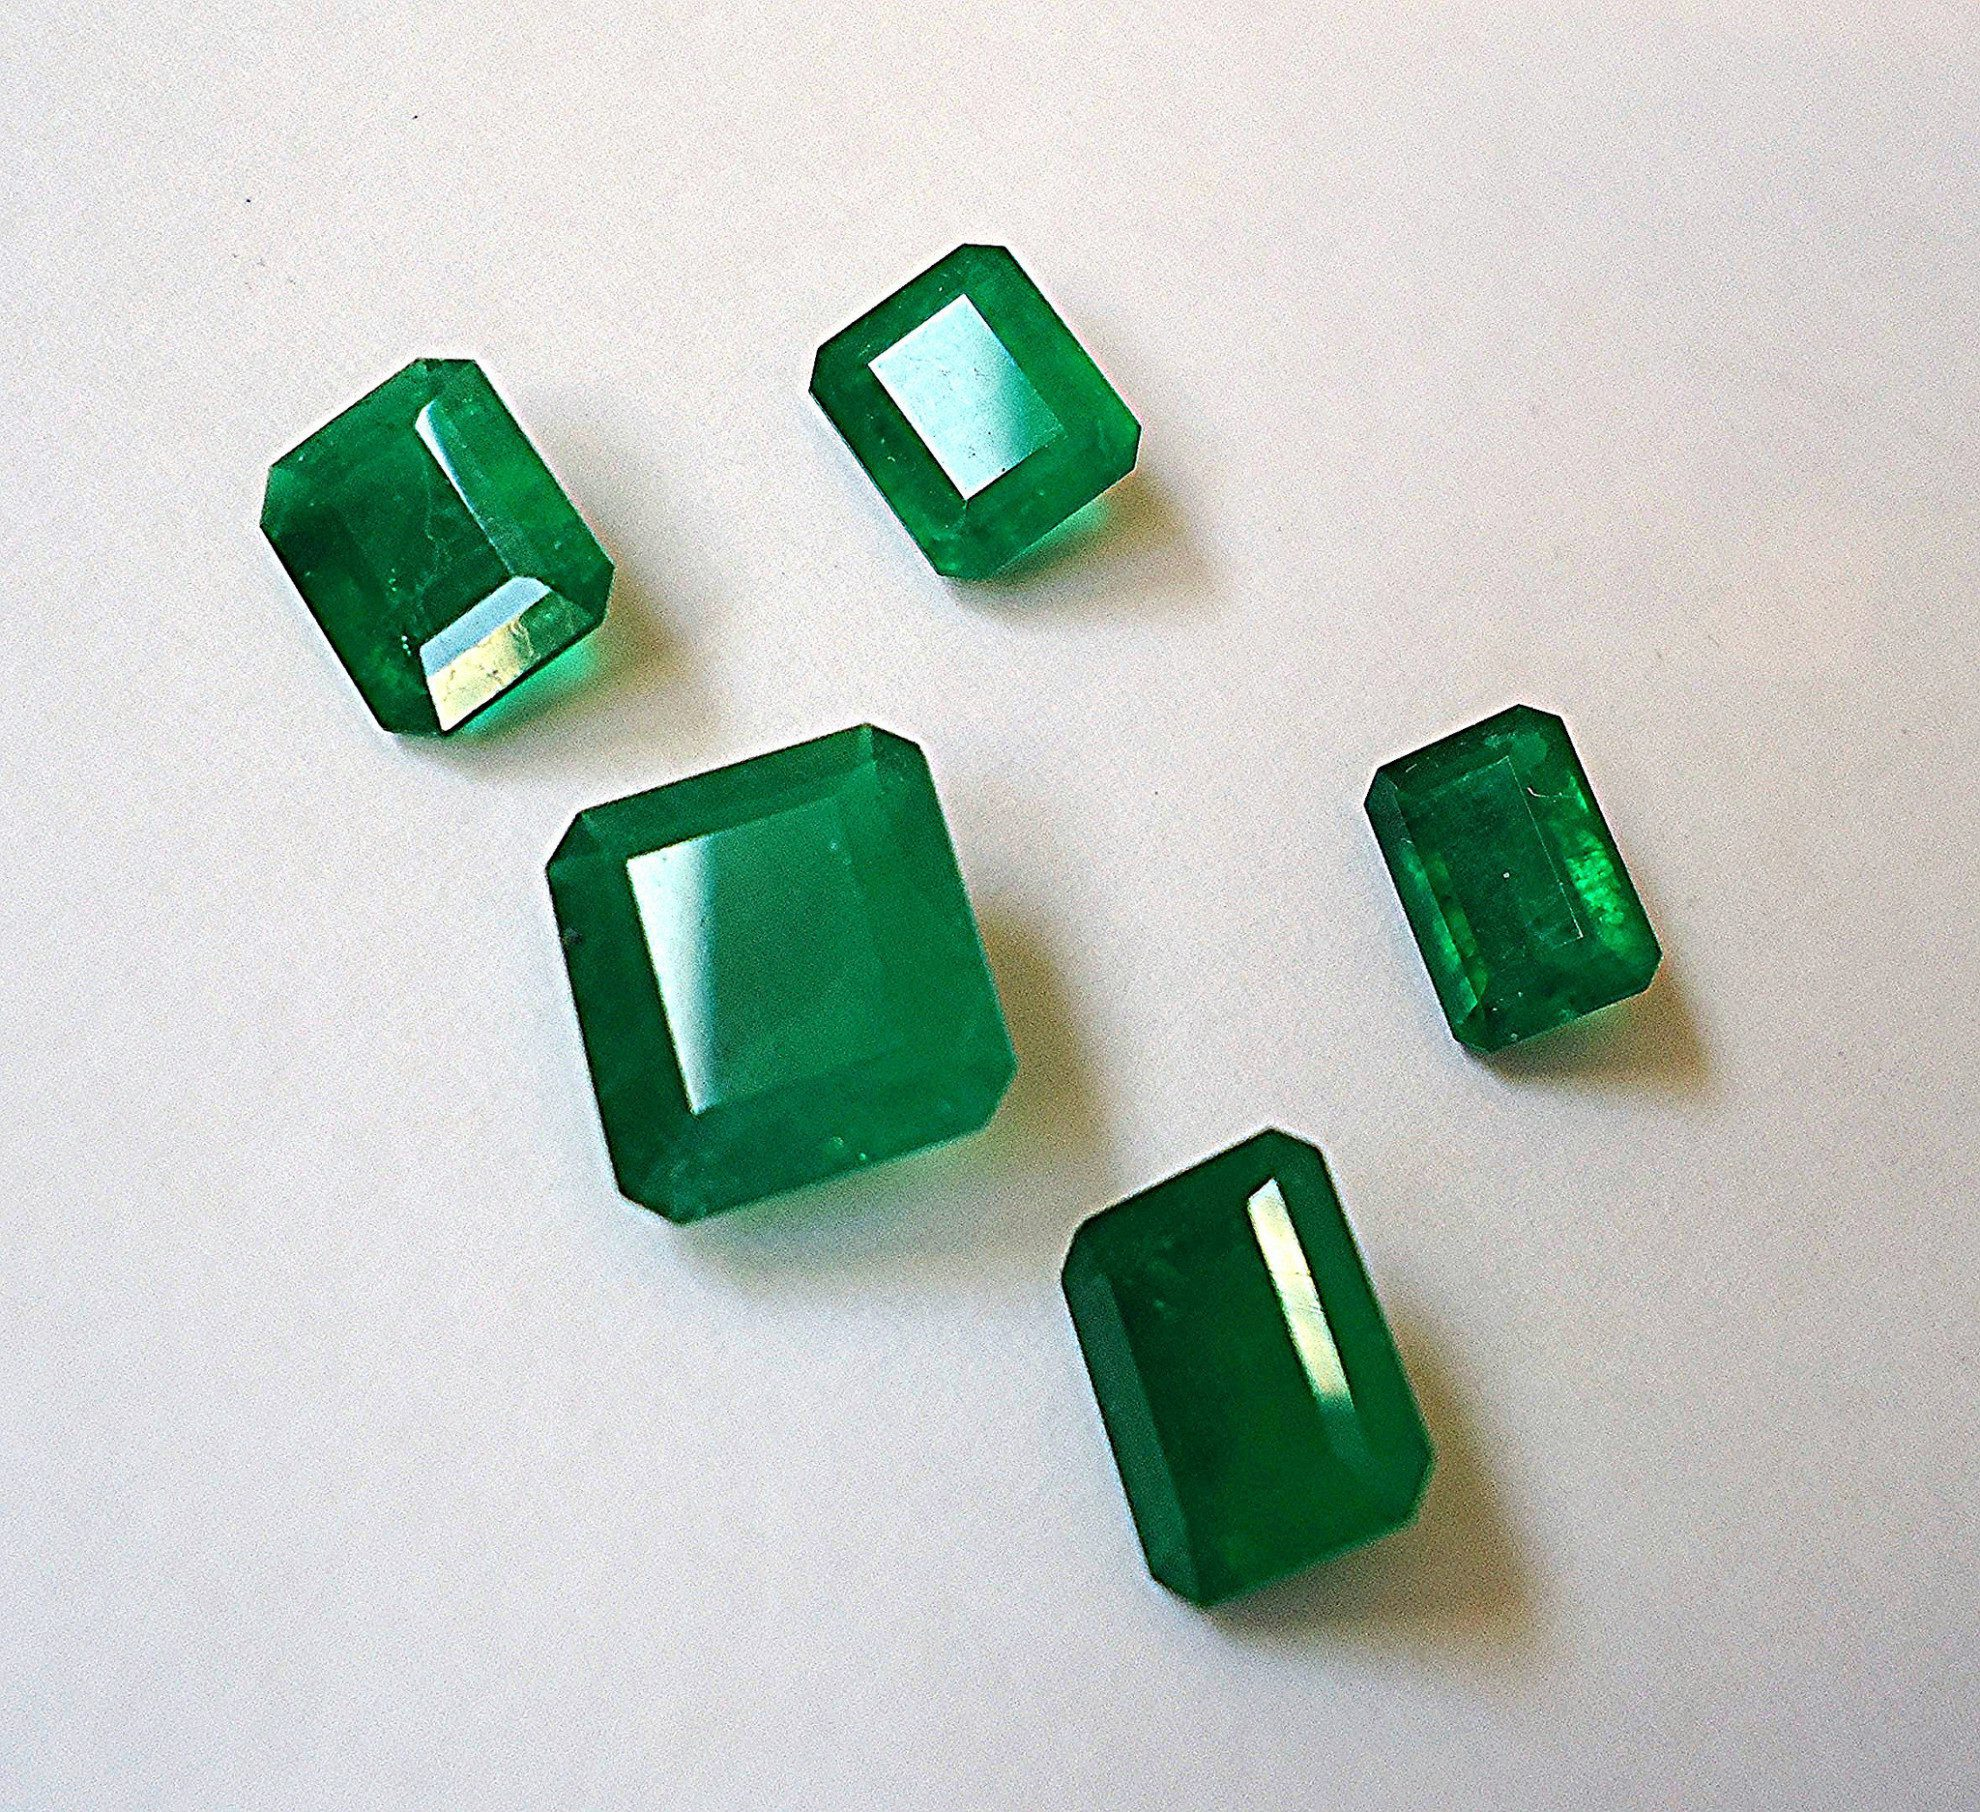 emerald rings differences between the real and synthetic. \u201cColombian Emeralds\u201d By Mauro Cateb. Licensed Under CC 2.0. Emerald Rings Differences Between The Real And Synthetic